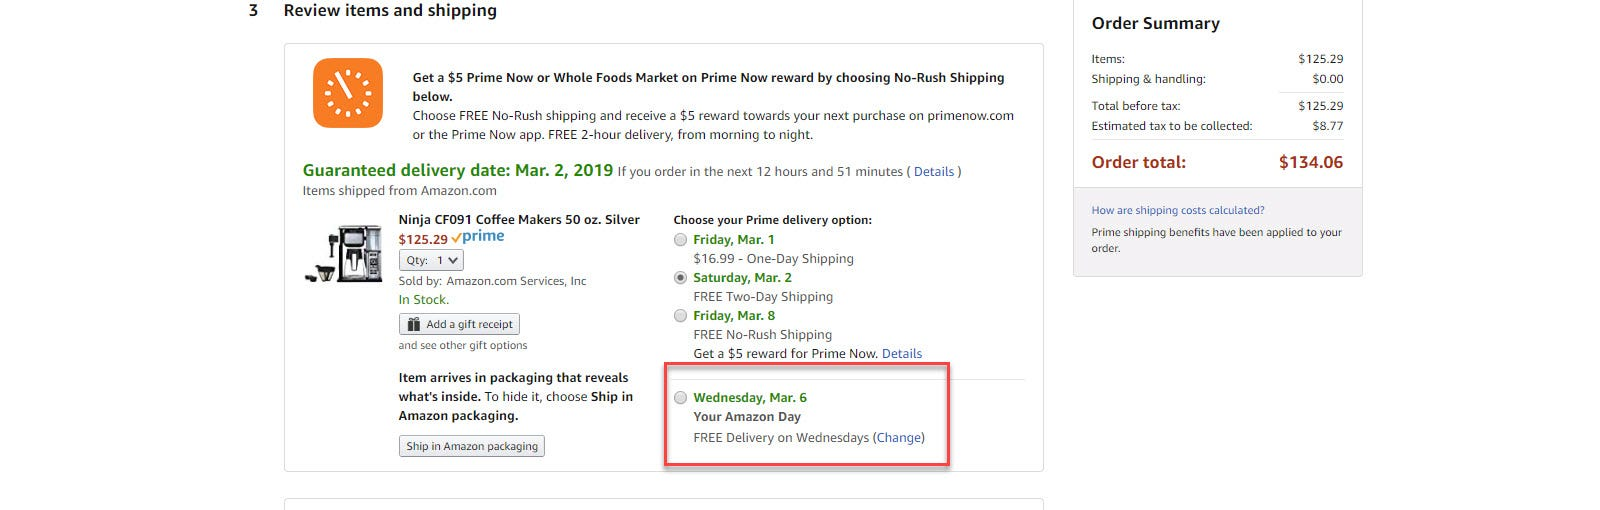 Amazon Checkout shipping options with Preferred Day call out